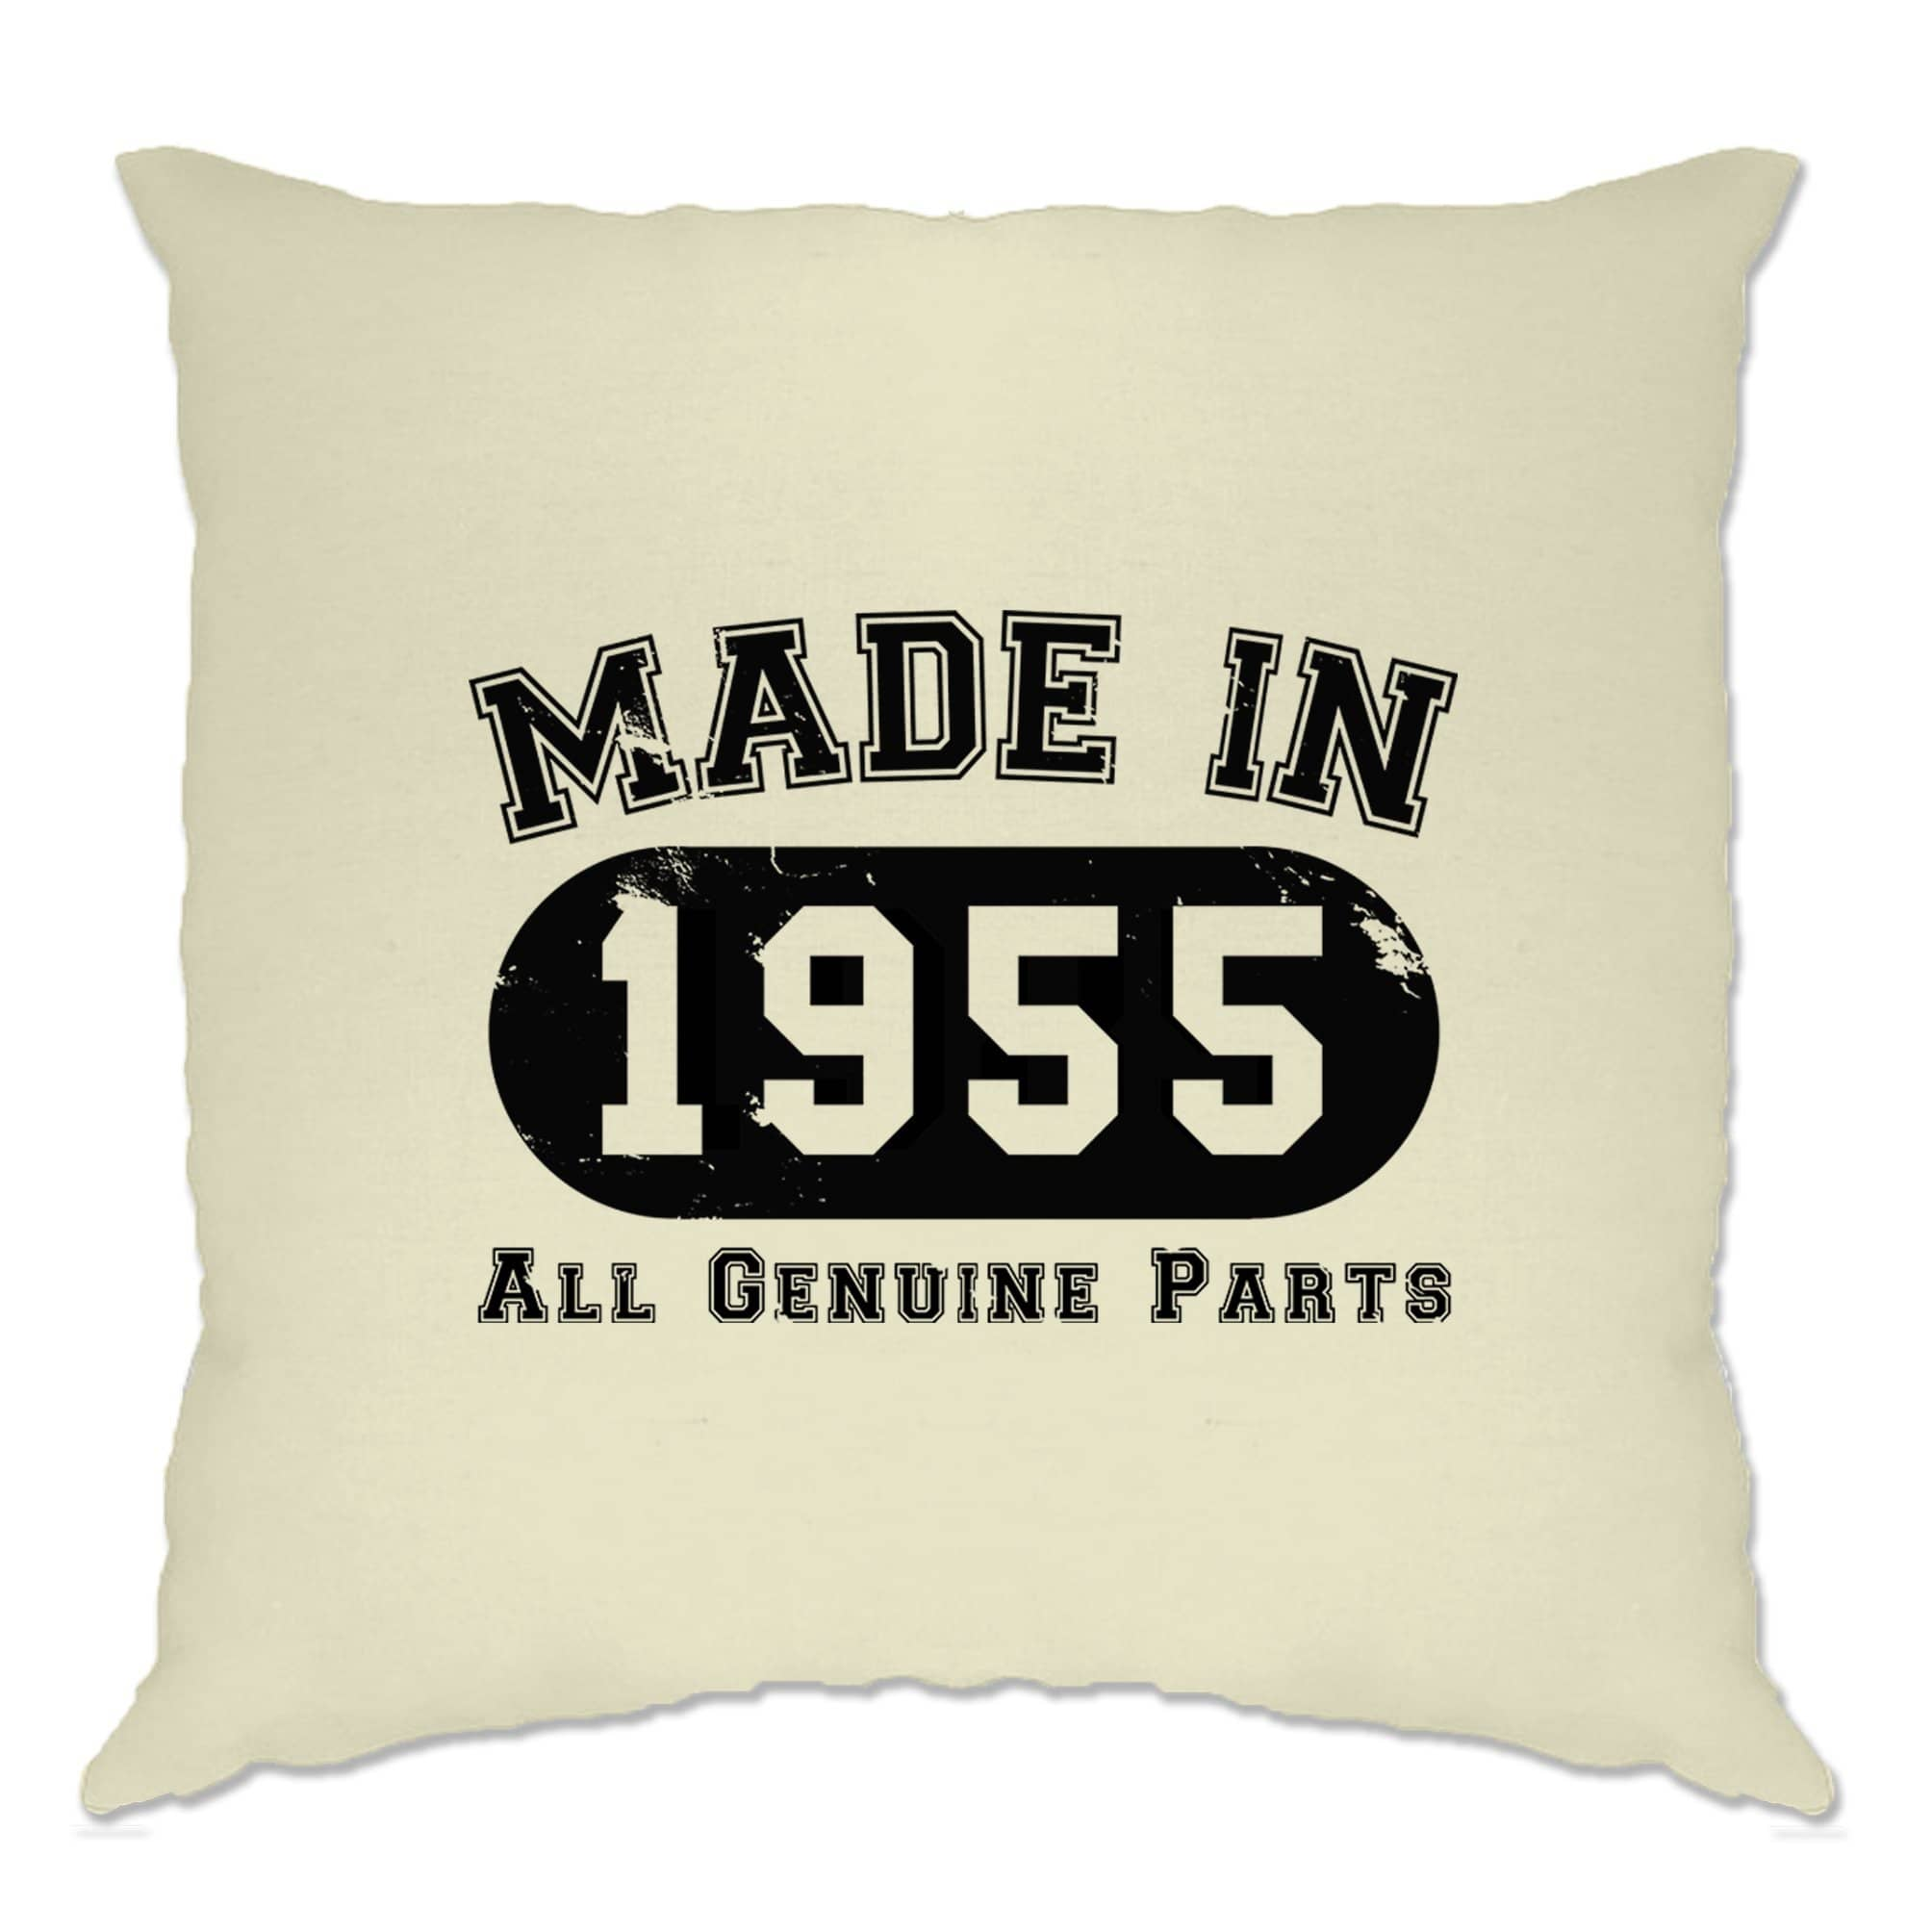 Birthday Cushion Cover Made in 1955 All Genuine Parts